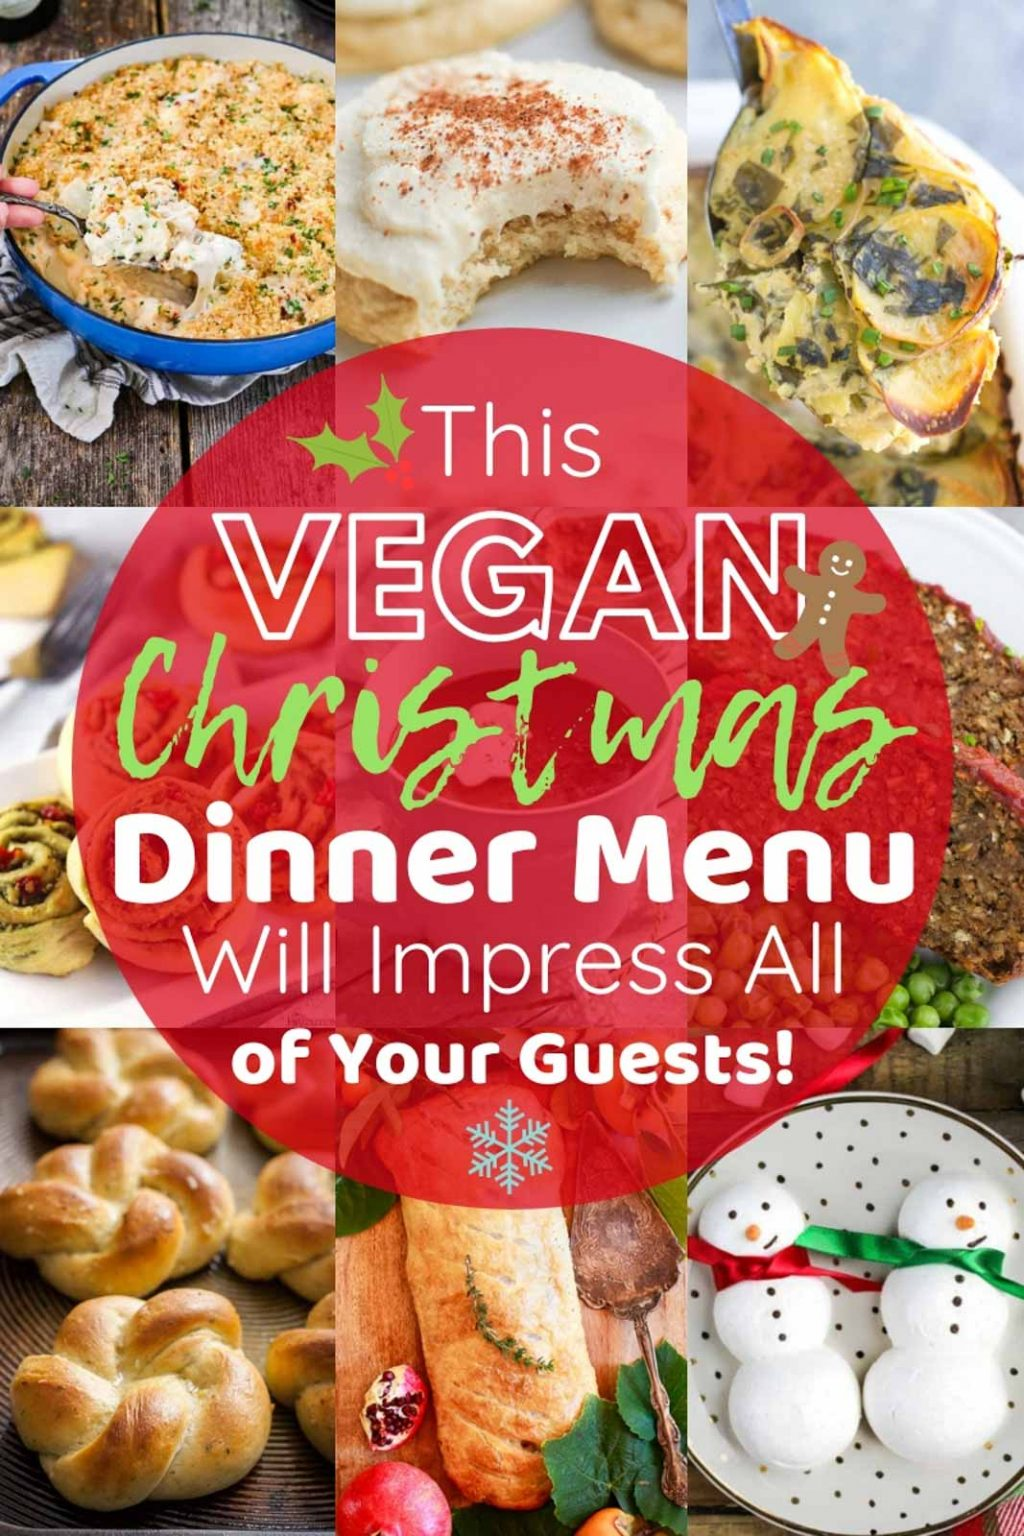 A photo collage showing a complete vegan Christmas dinner menu!